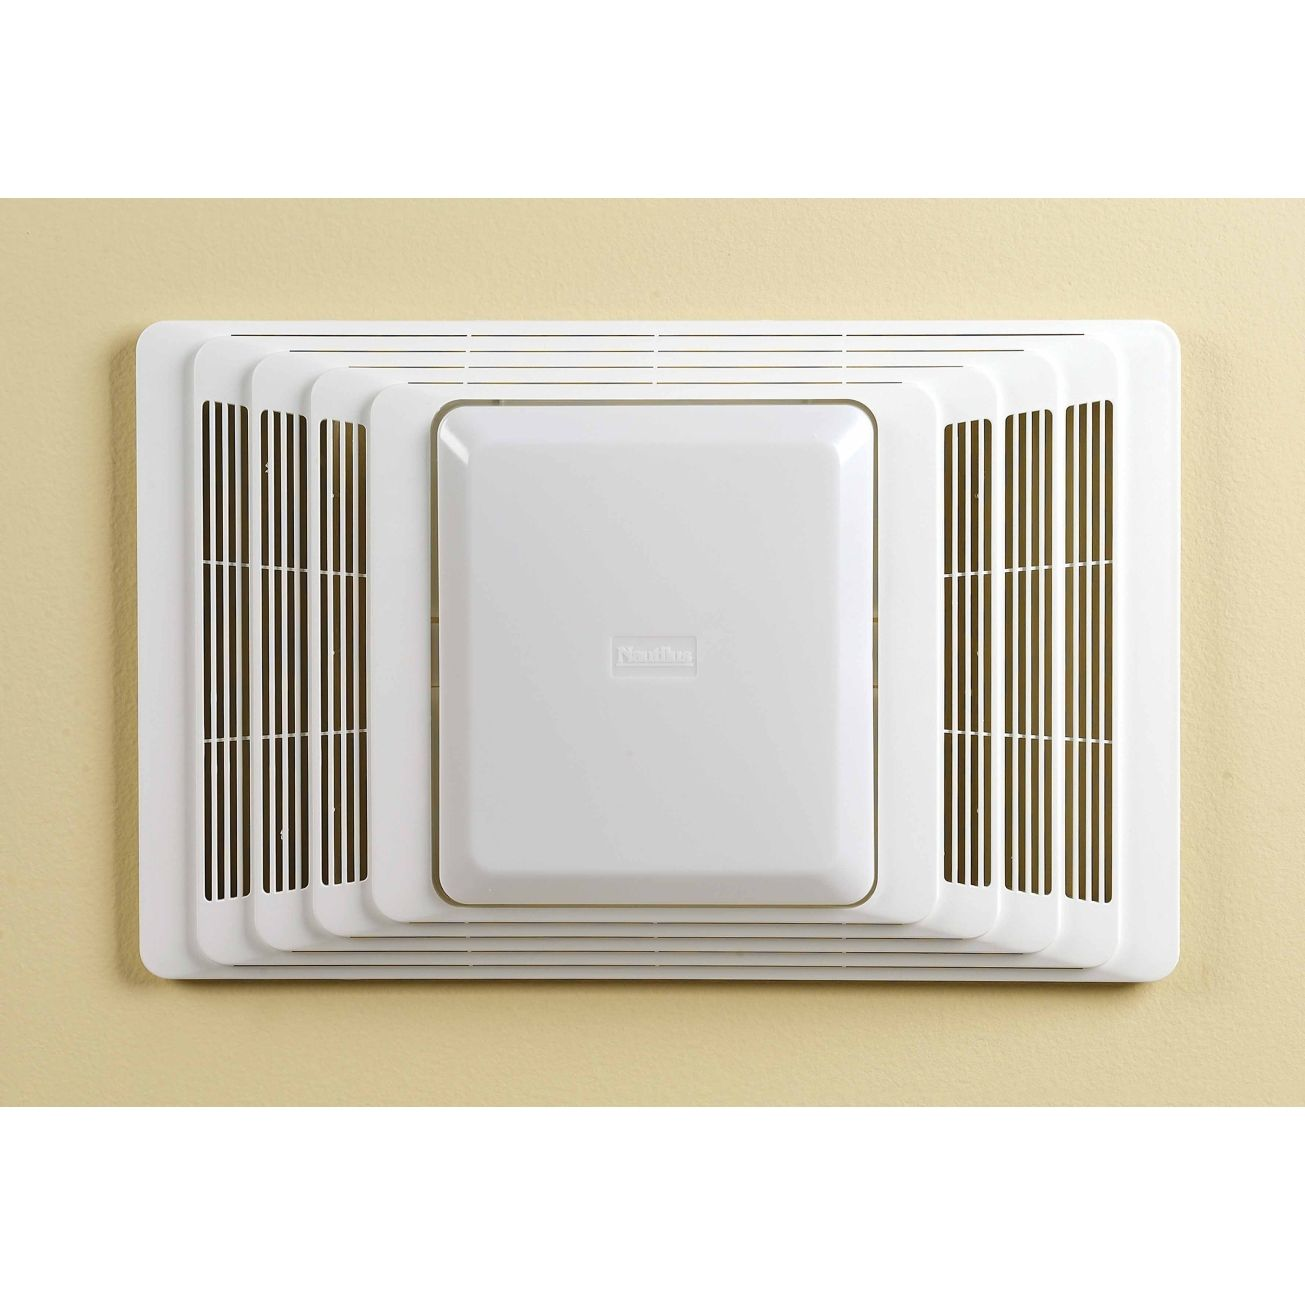 Broan 70cfm deluxe bathroom heater fan light 655 bath fans broan ventilation fanheat combination with lights ceiling 16 34 in d x 7 78 in h x 10 58 in65 bath fans heaters aloadofball